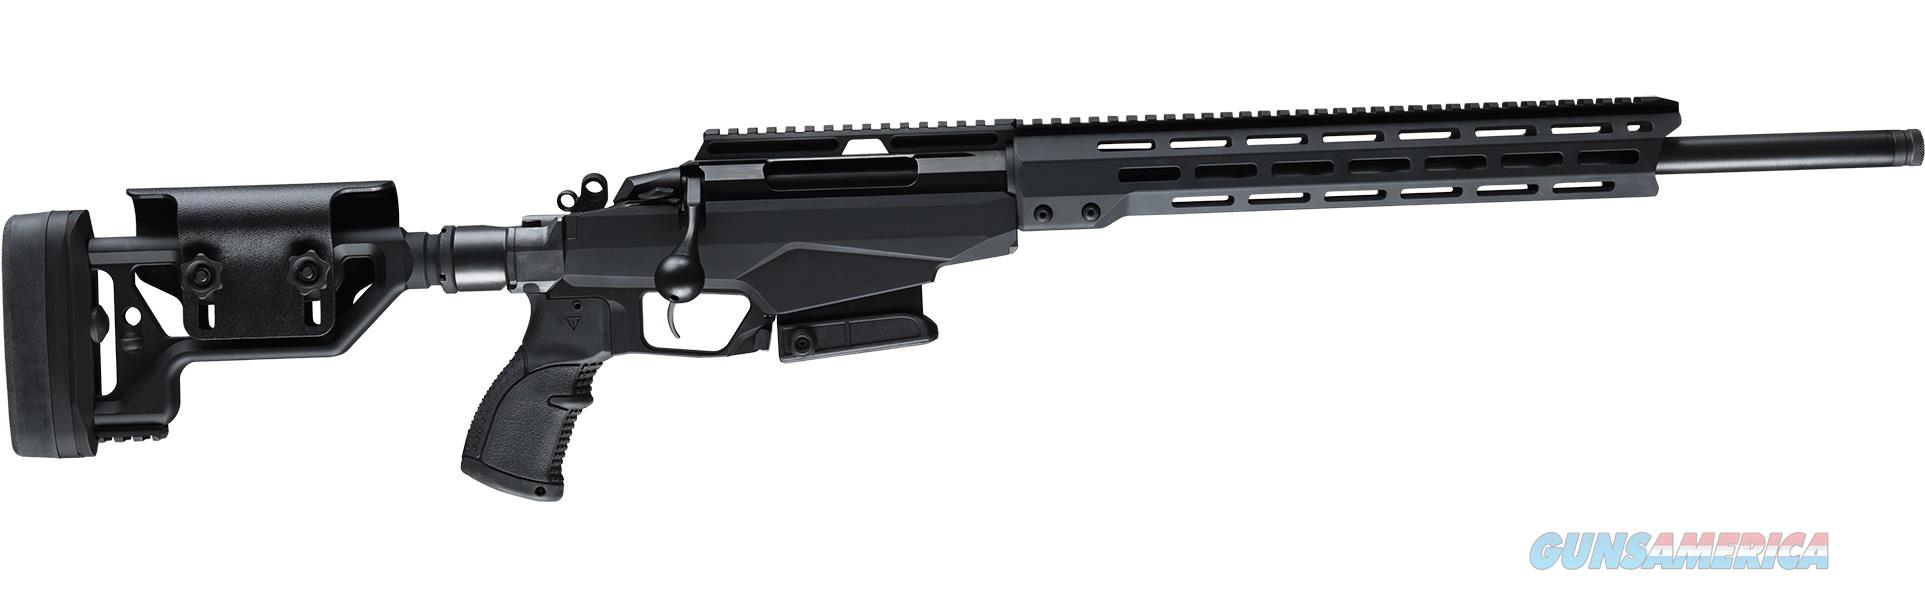 "Tikka T3x TAC A1 .260 Remington 24"" TB 10 Rds JRTAC321L   Guns > Rifles > Tikka Rifles > T3"